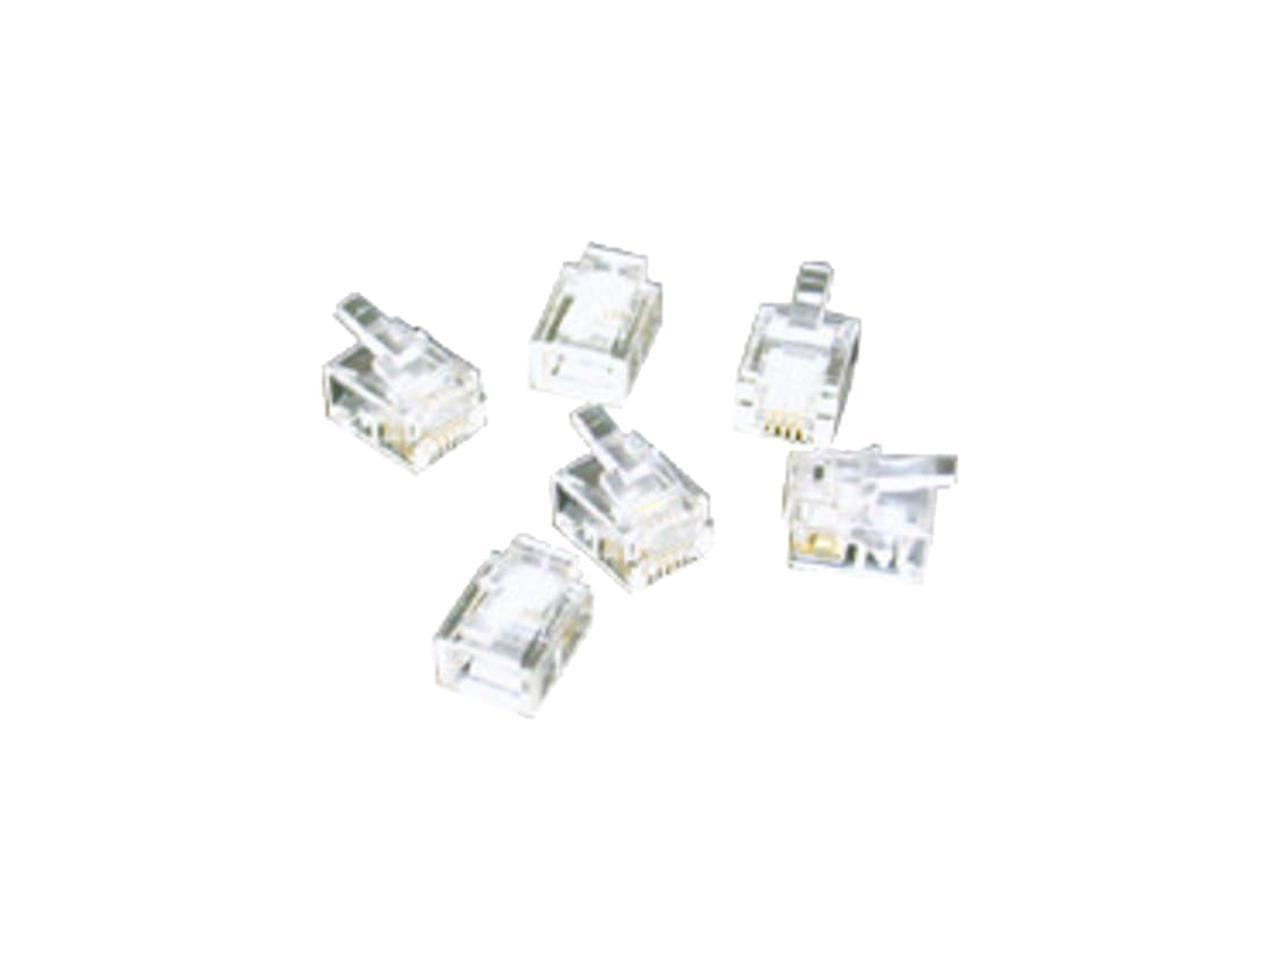 C2G 27557 RJ11 6x4 Modular Plug for Flat Stranded Cable